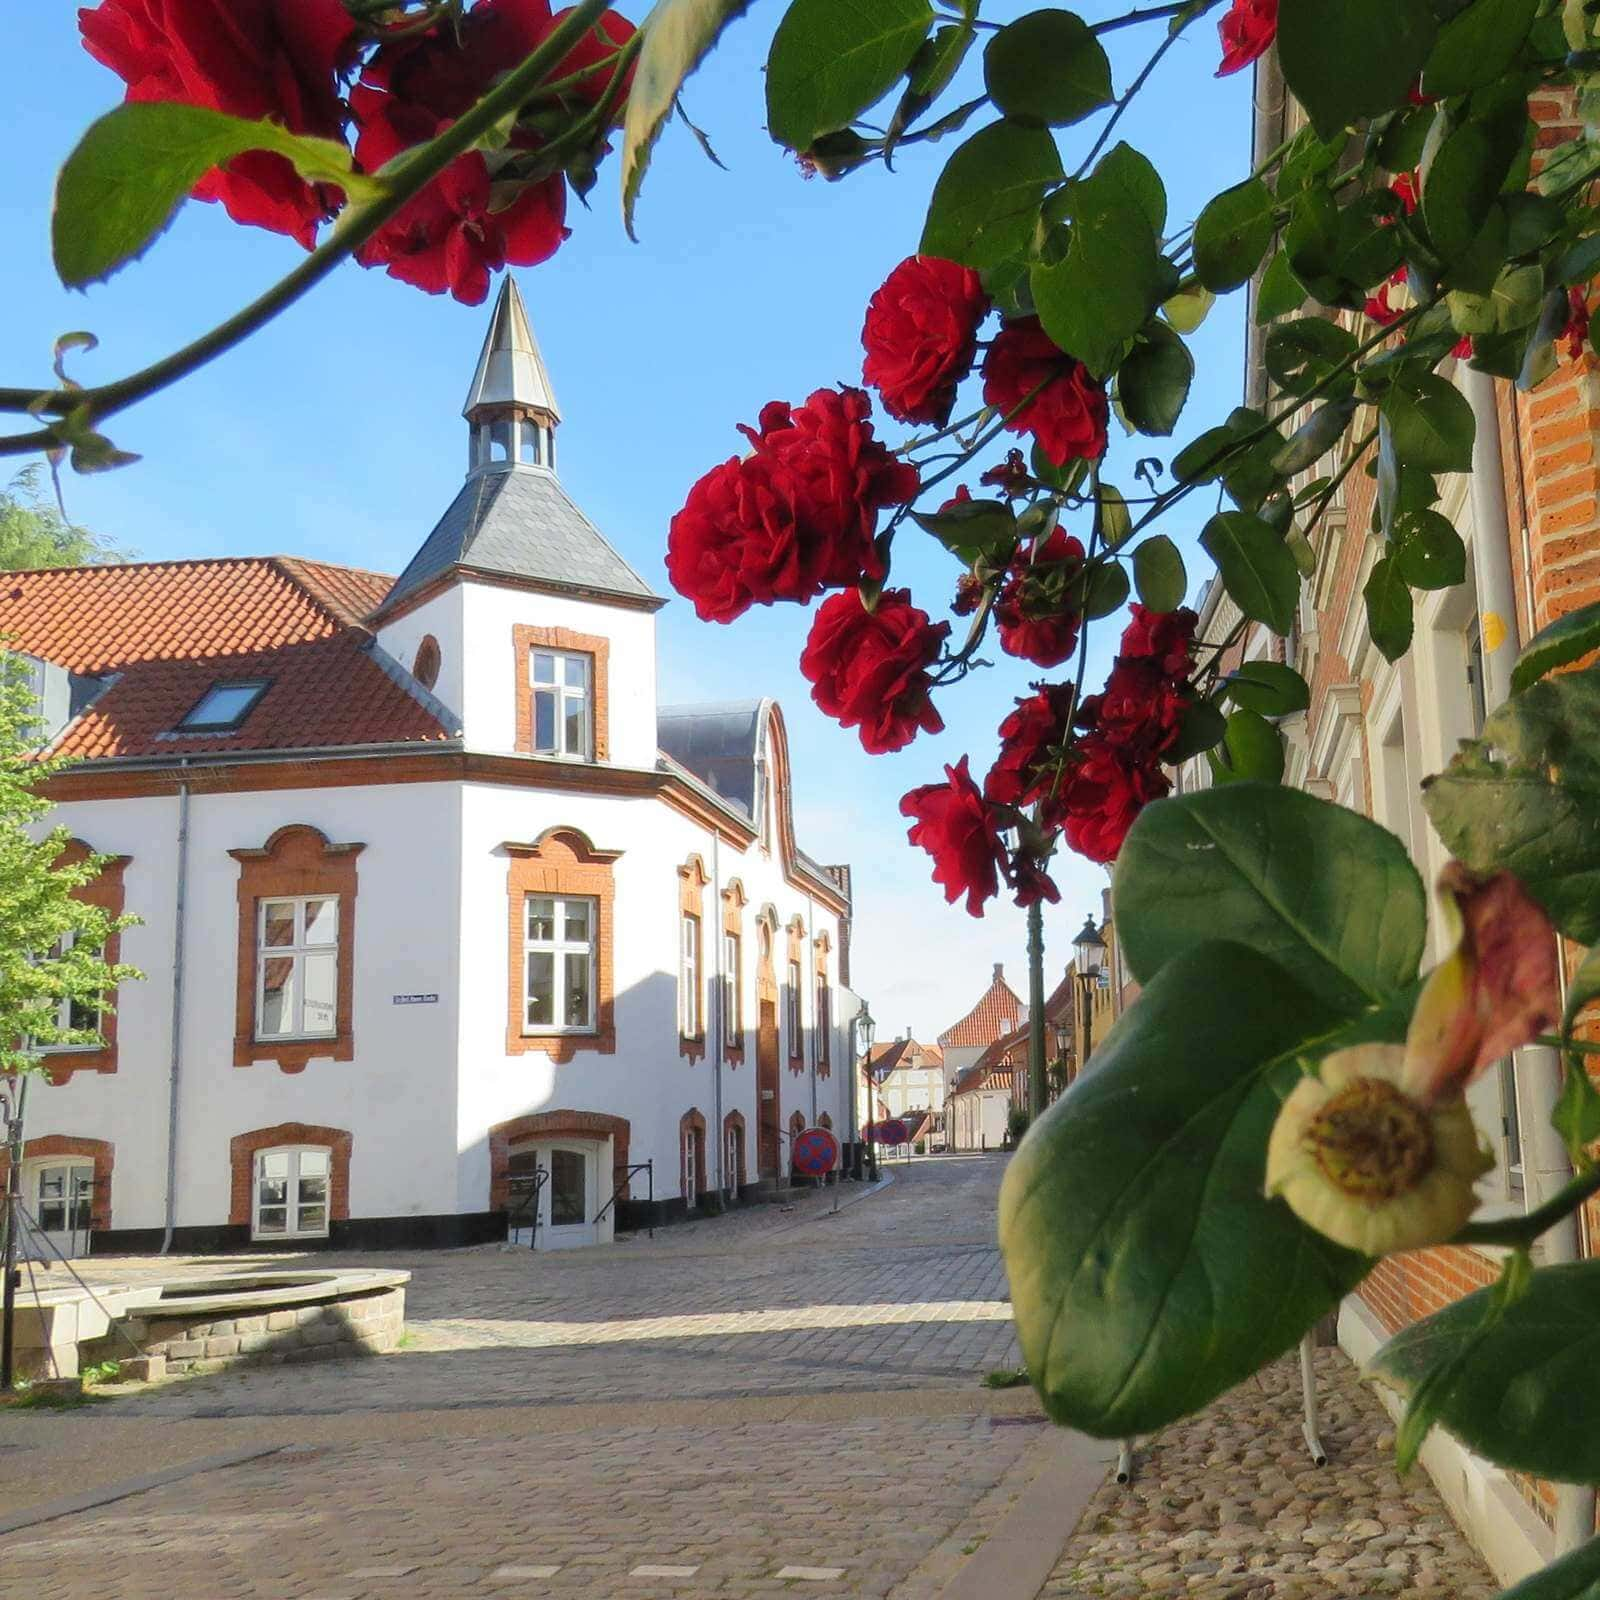 3 awesome day trips from Aarhus - Viborg guide